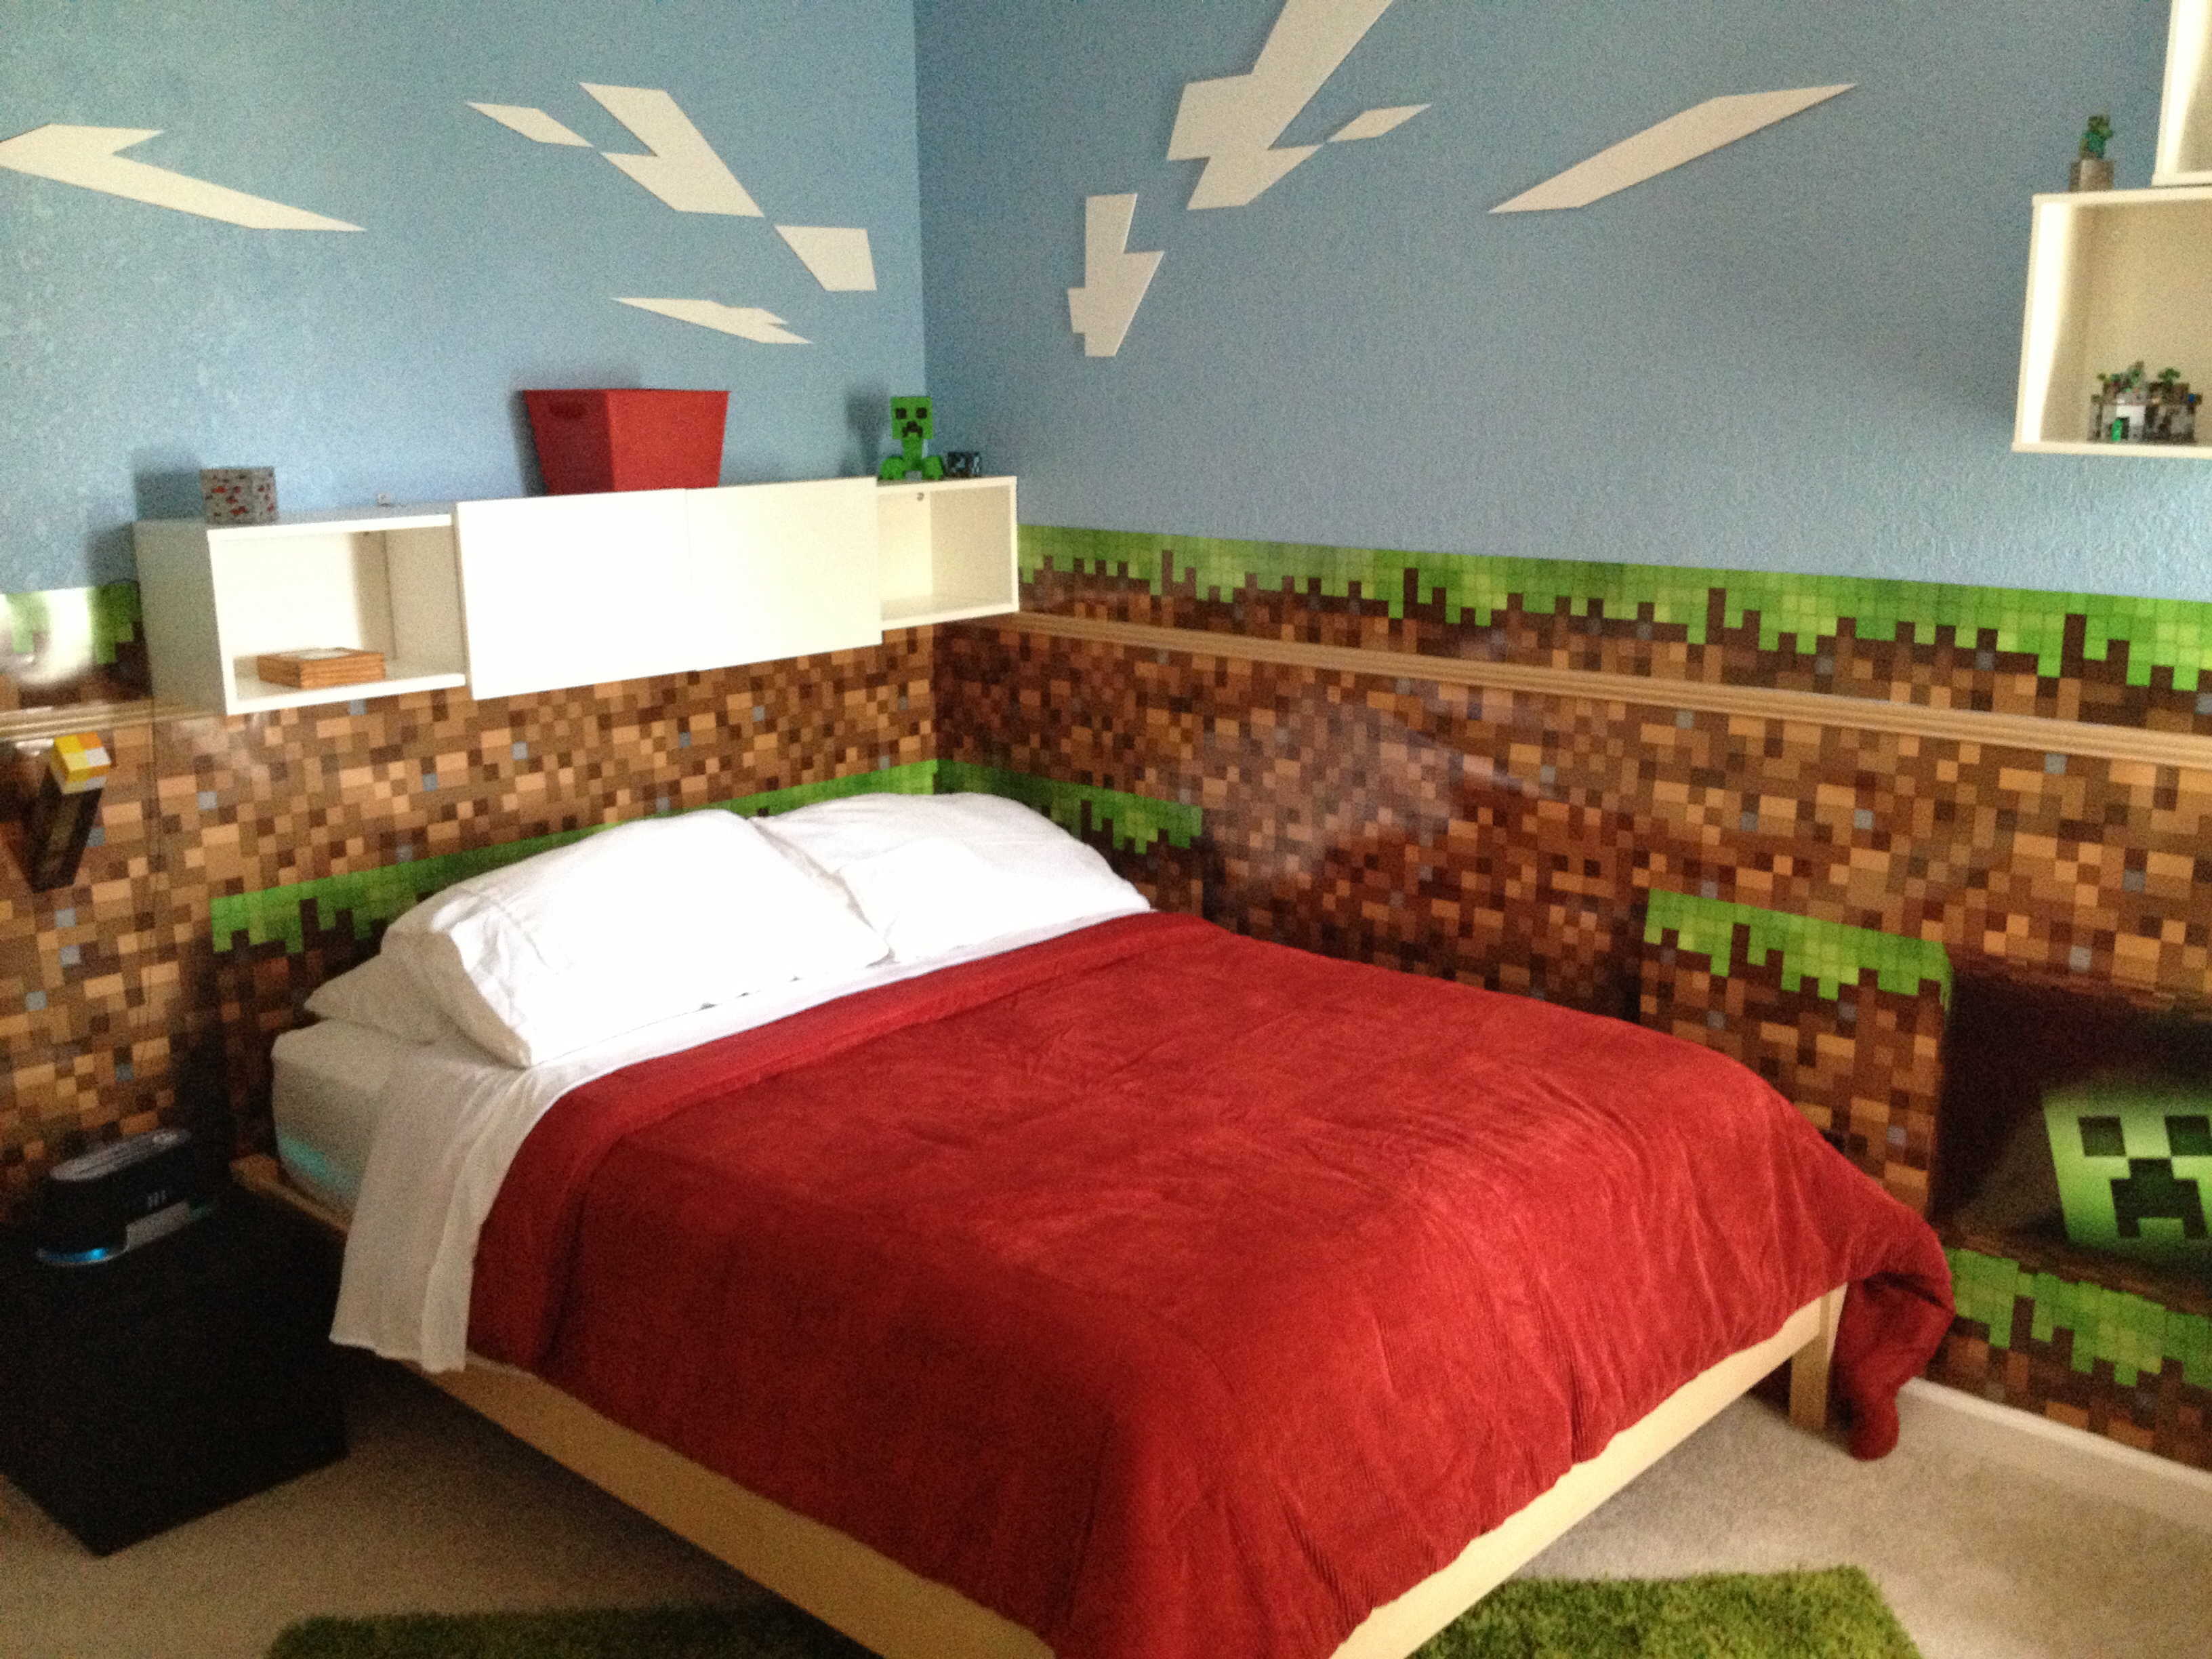 minecraft bedroom ideas amazing minecraft bedroom decor ideas mind food 14197